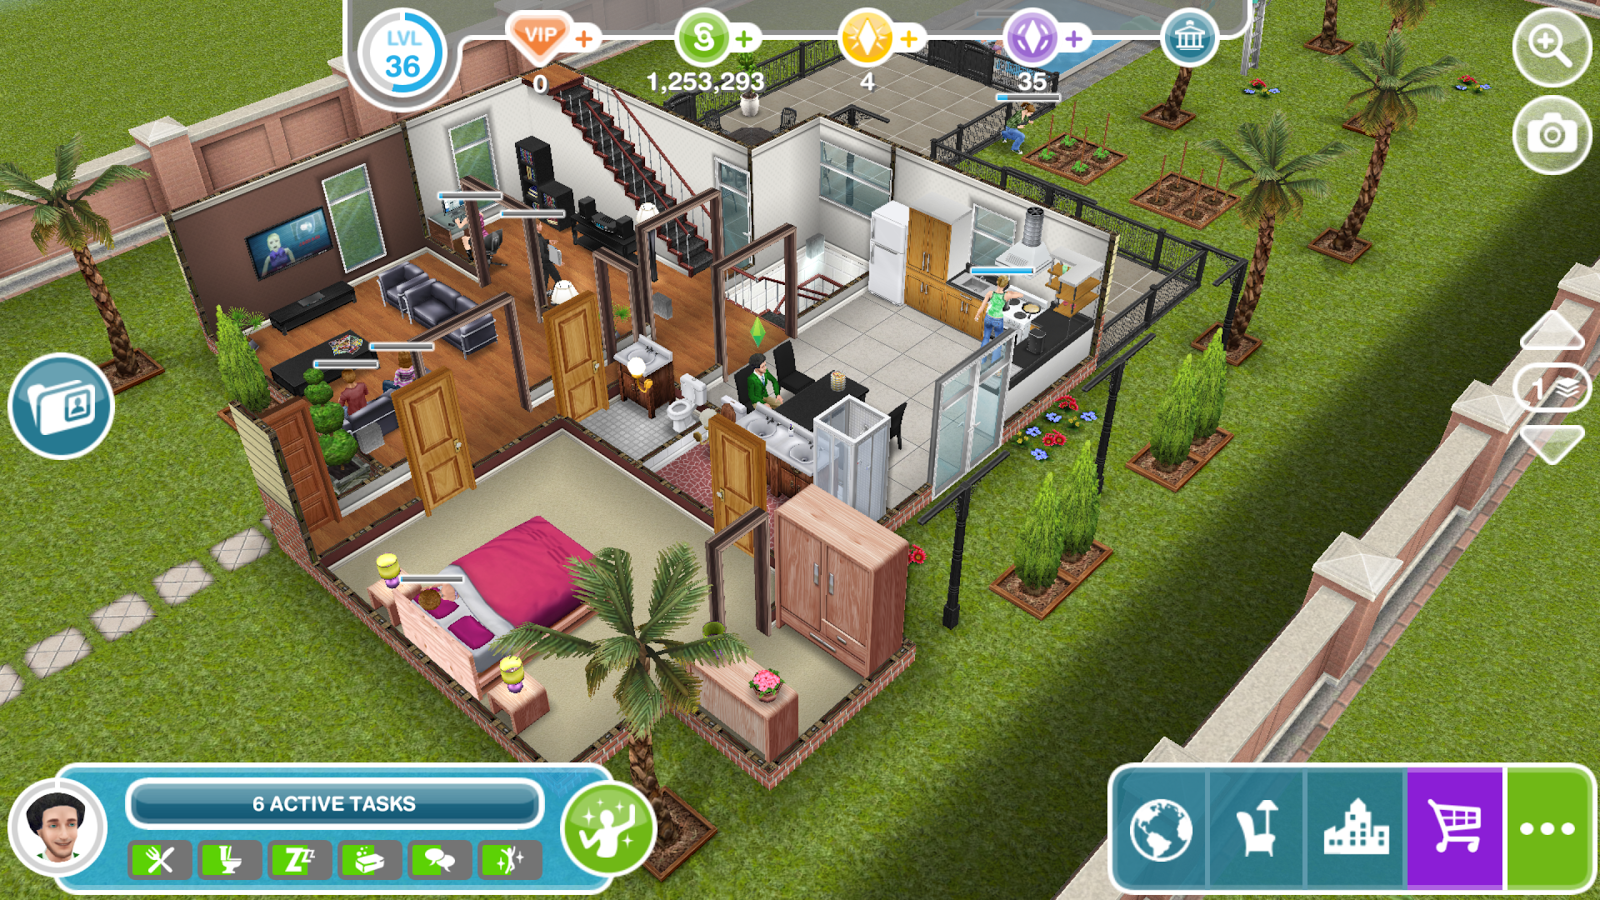 De sims freeplay android apps op google play for Sims 4 idee per la casa